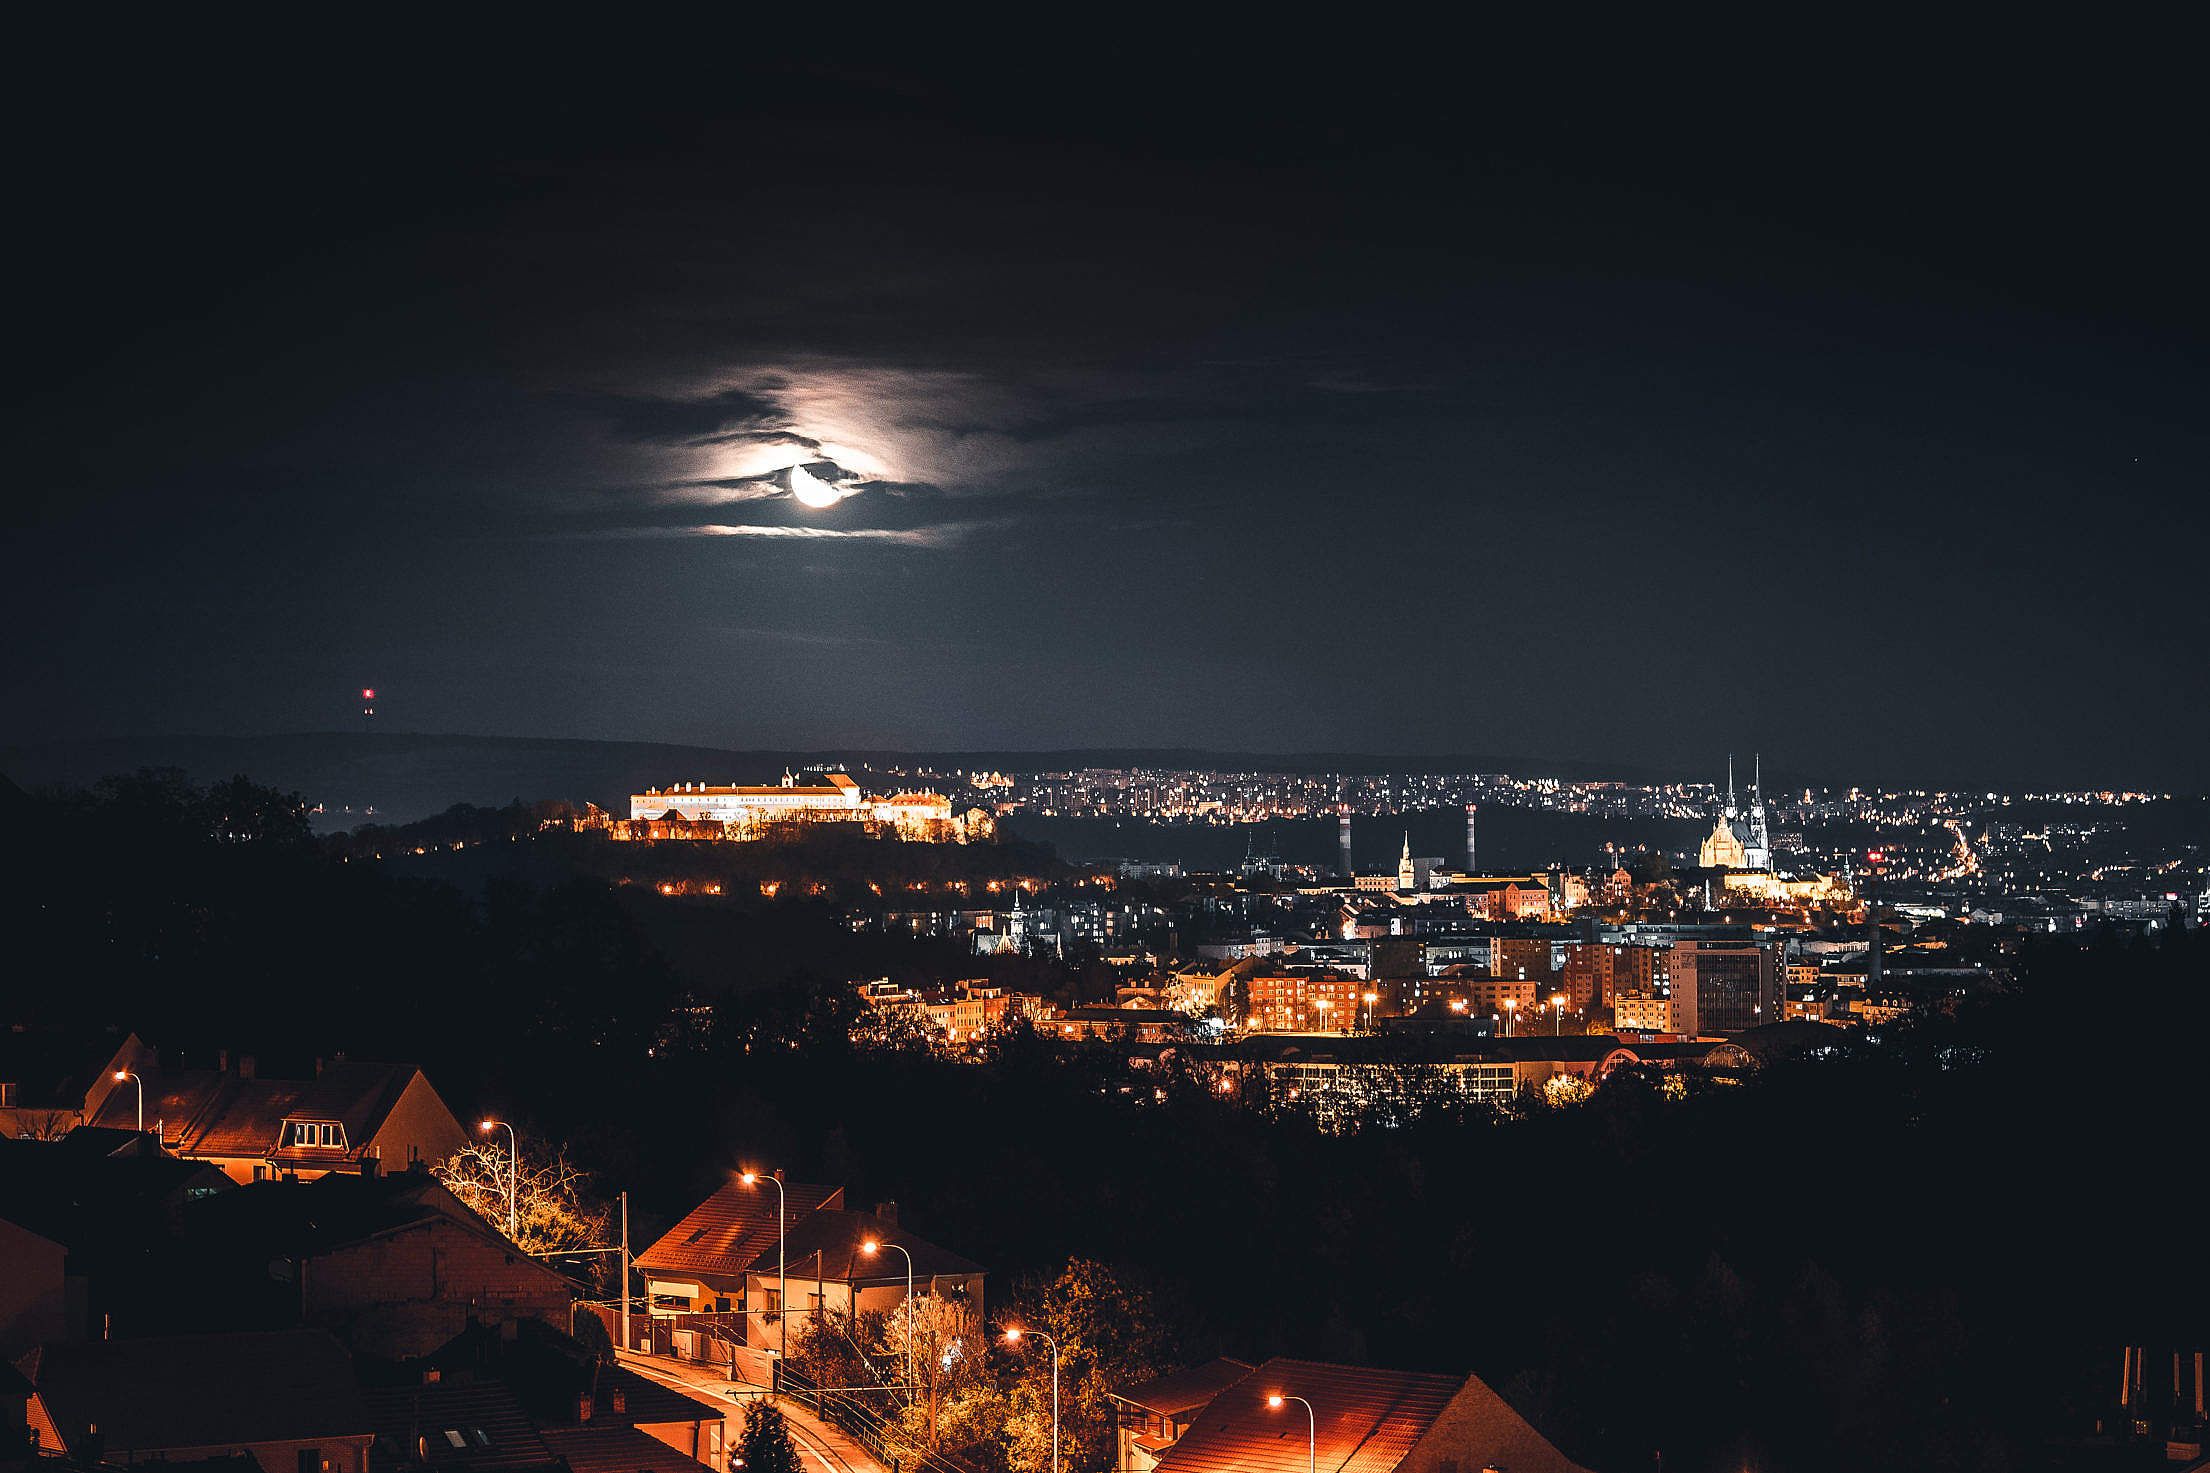 Brno City, Czechia at Night Free Stock Photo